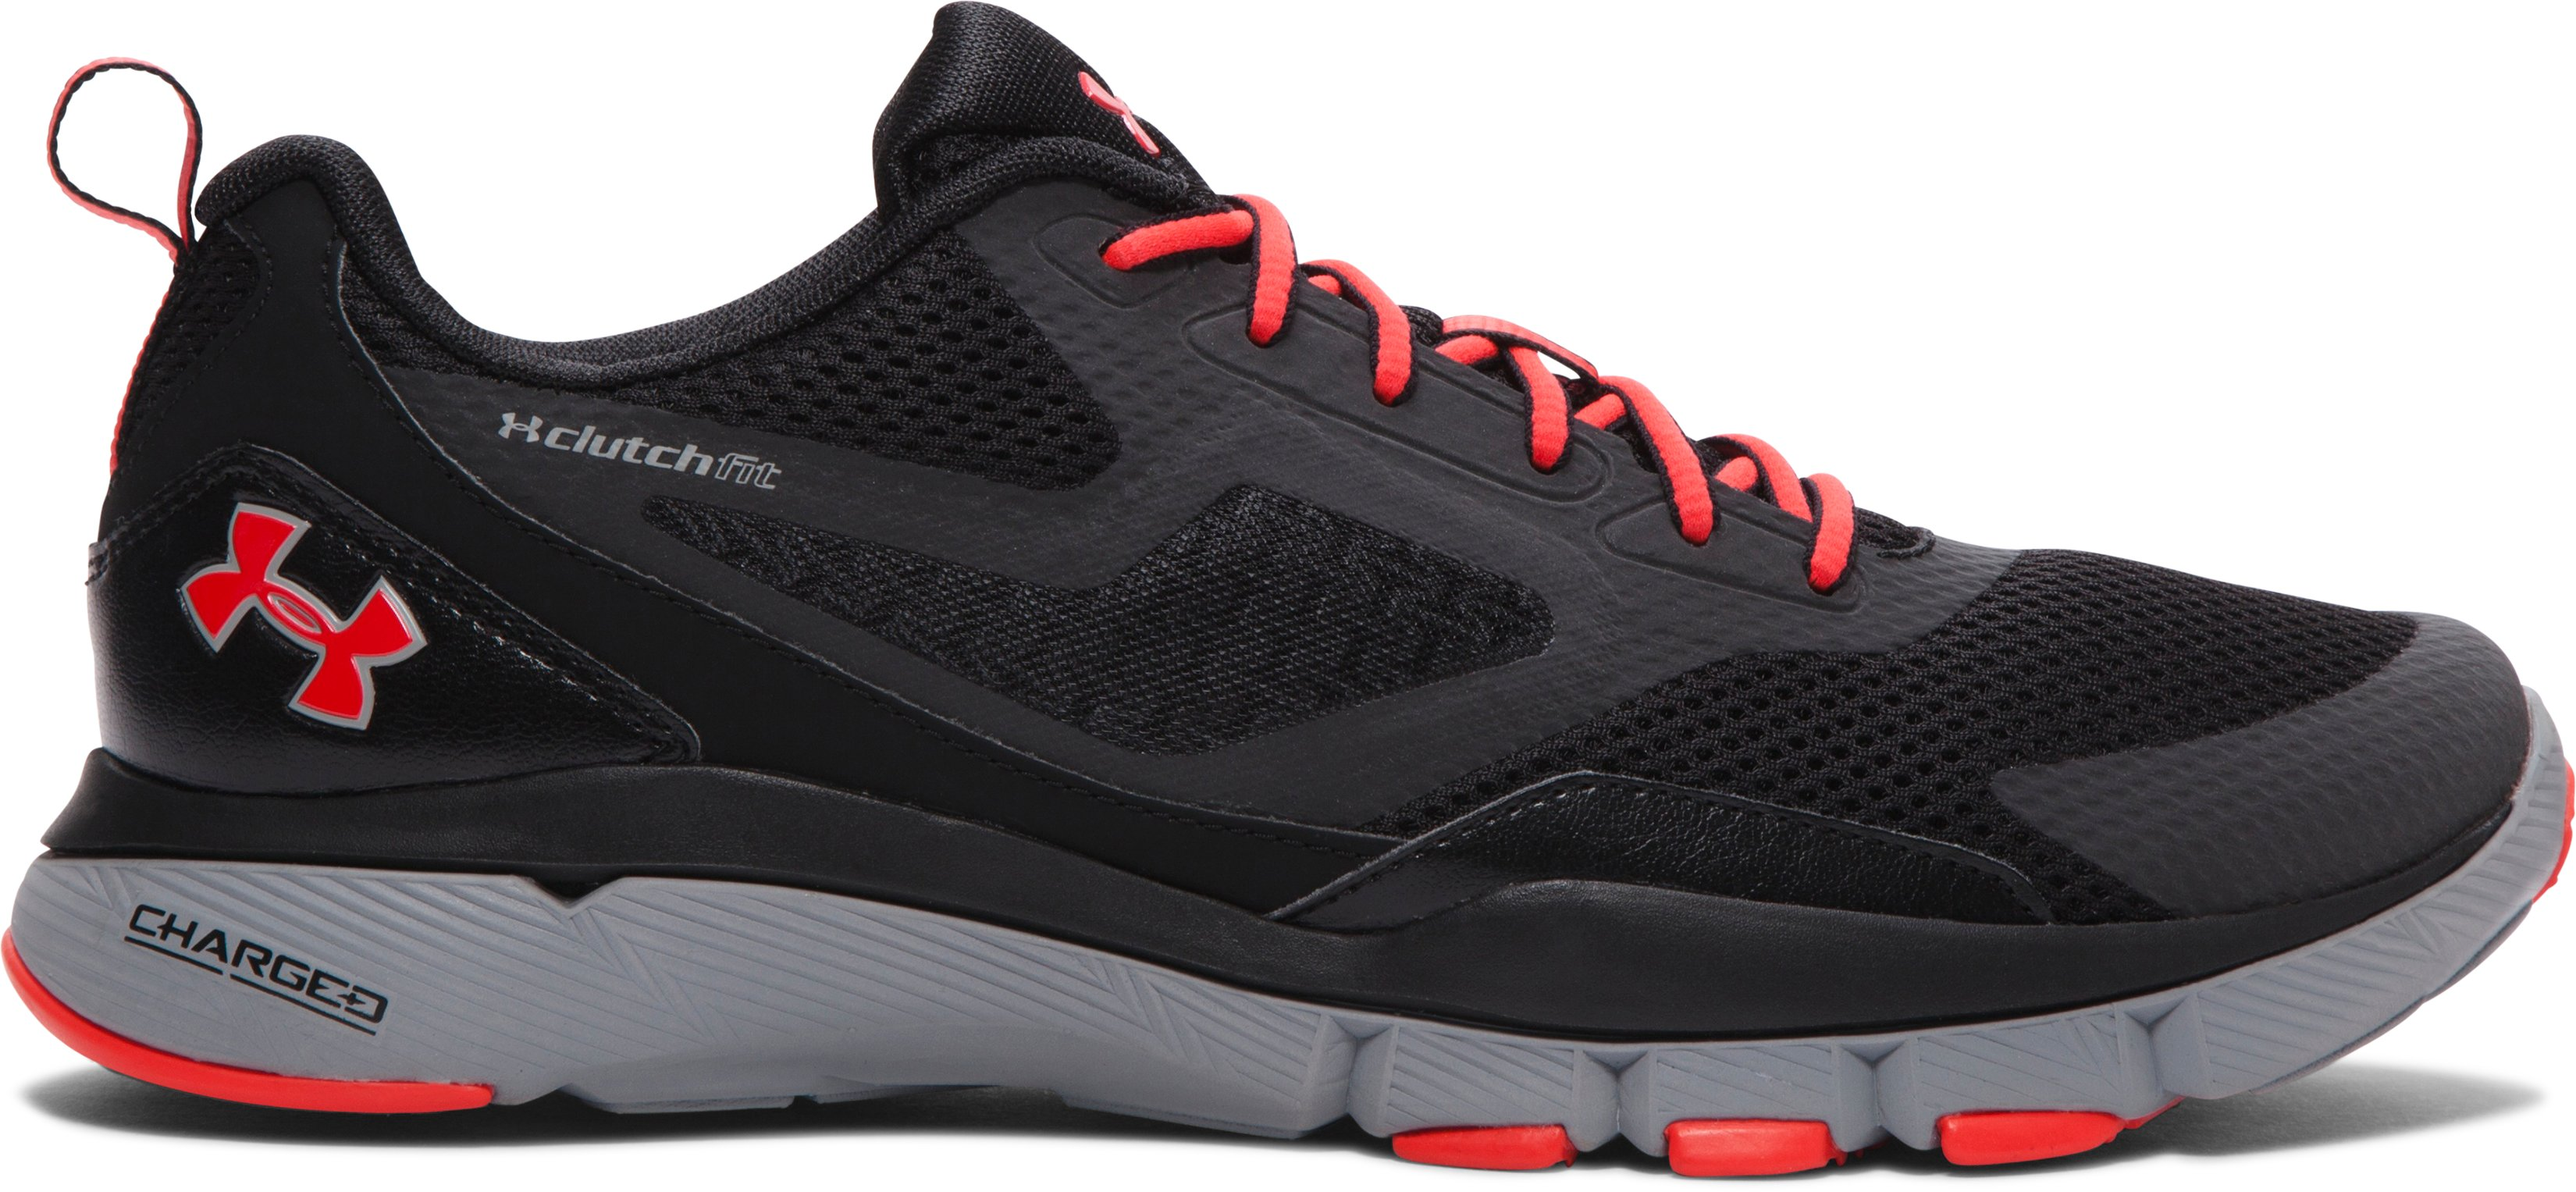 Zapatos de Training UA Charged One para Hombre, 360 degree view